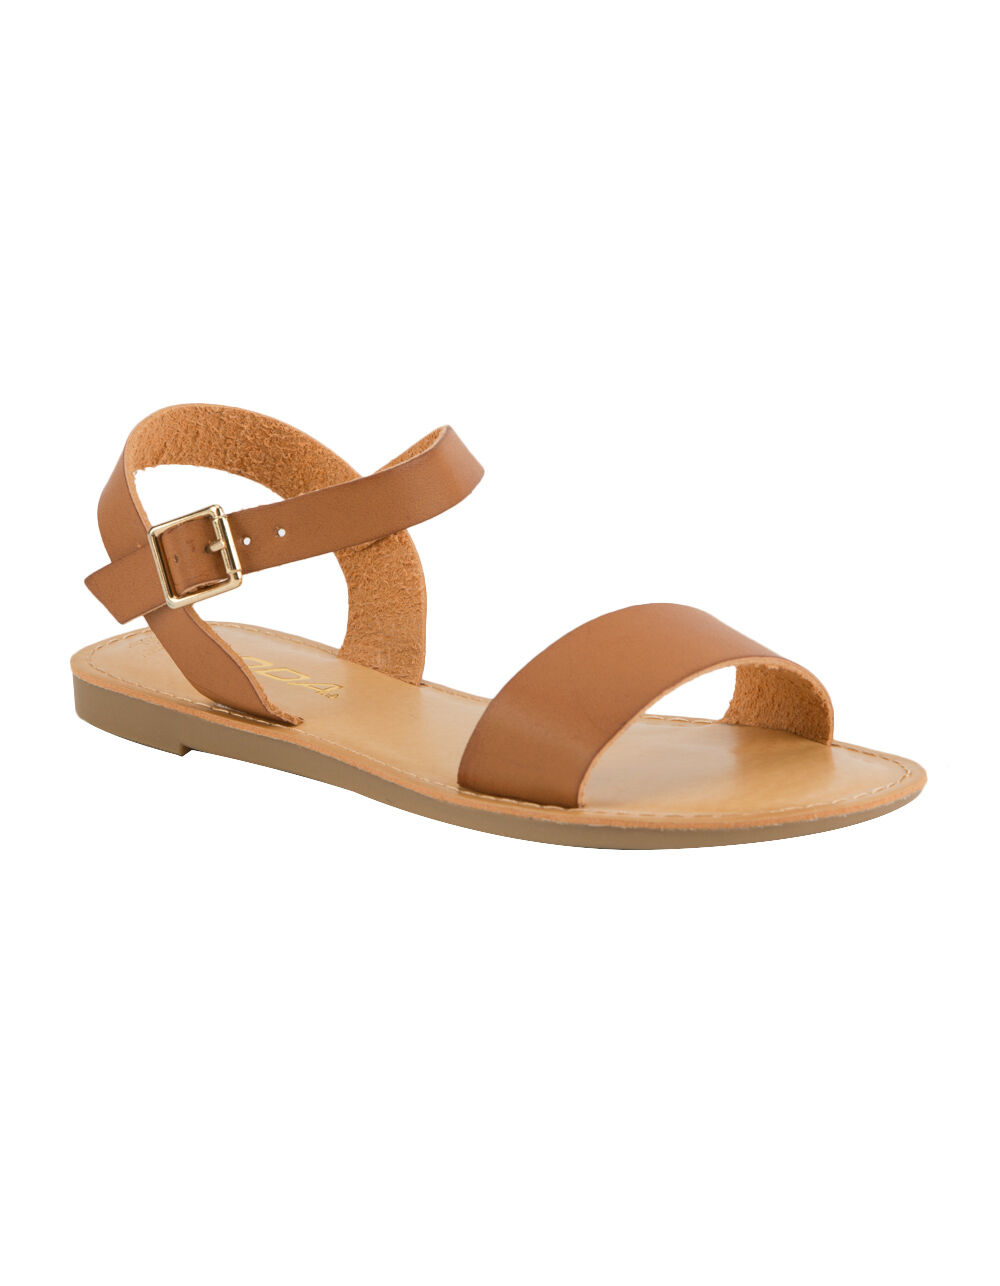 SODA ANKLE STRAP GIRLS TAN SANDALS